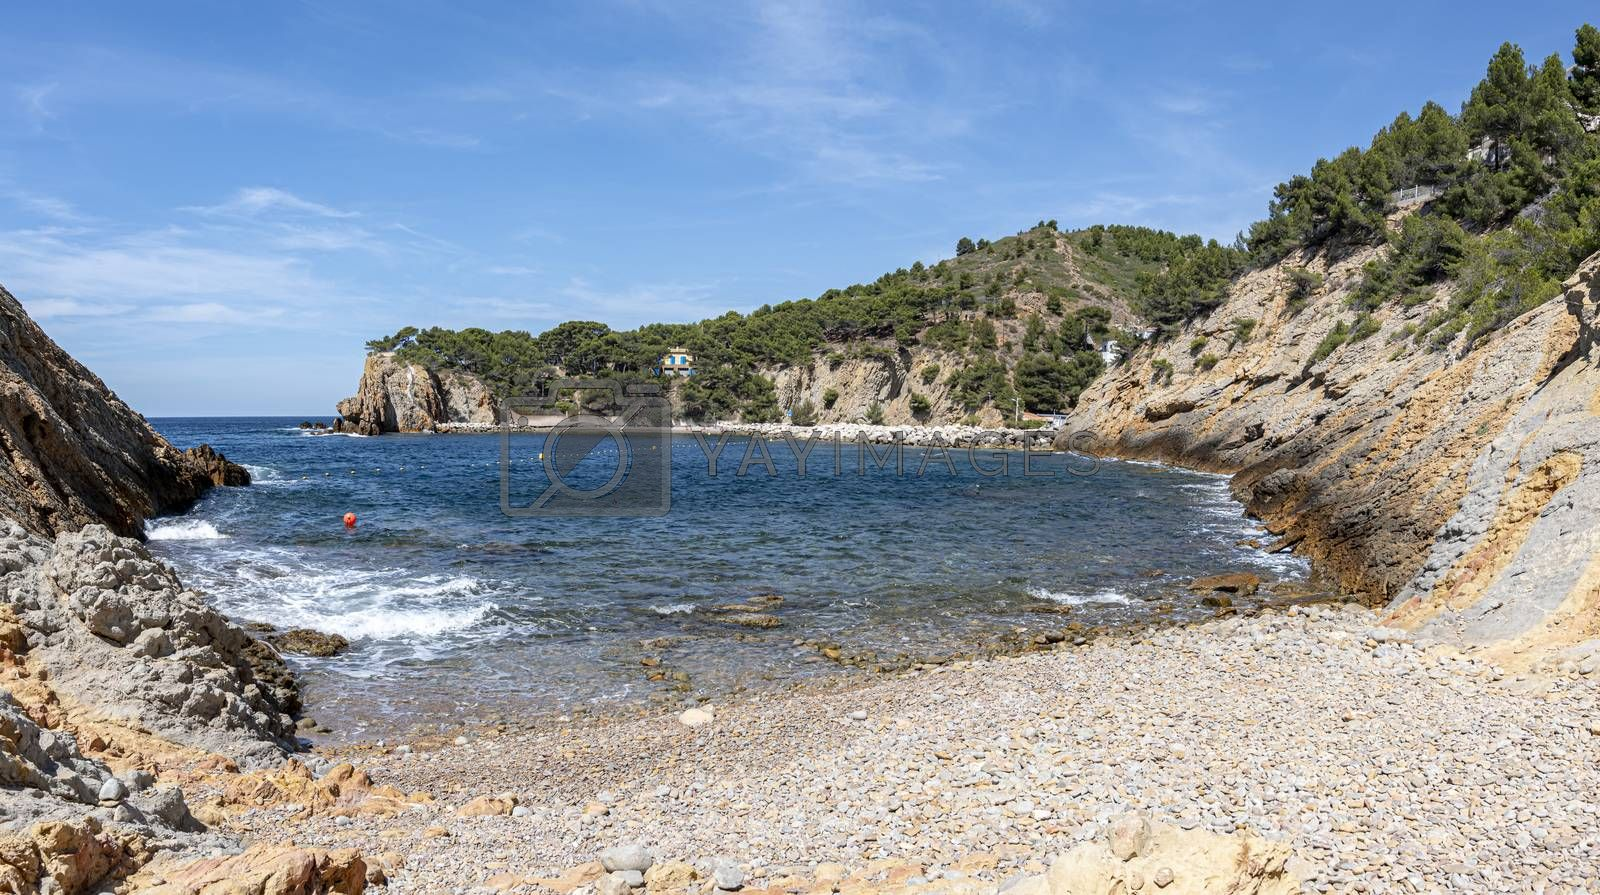 Bay and pebble beach of  the iconic Calanque of Figuieres, creek of Figuieres and Figuières Cove in Méjean, South of France, Europe